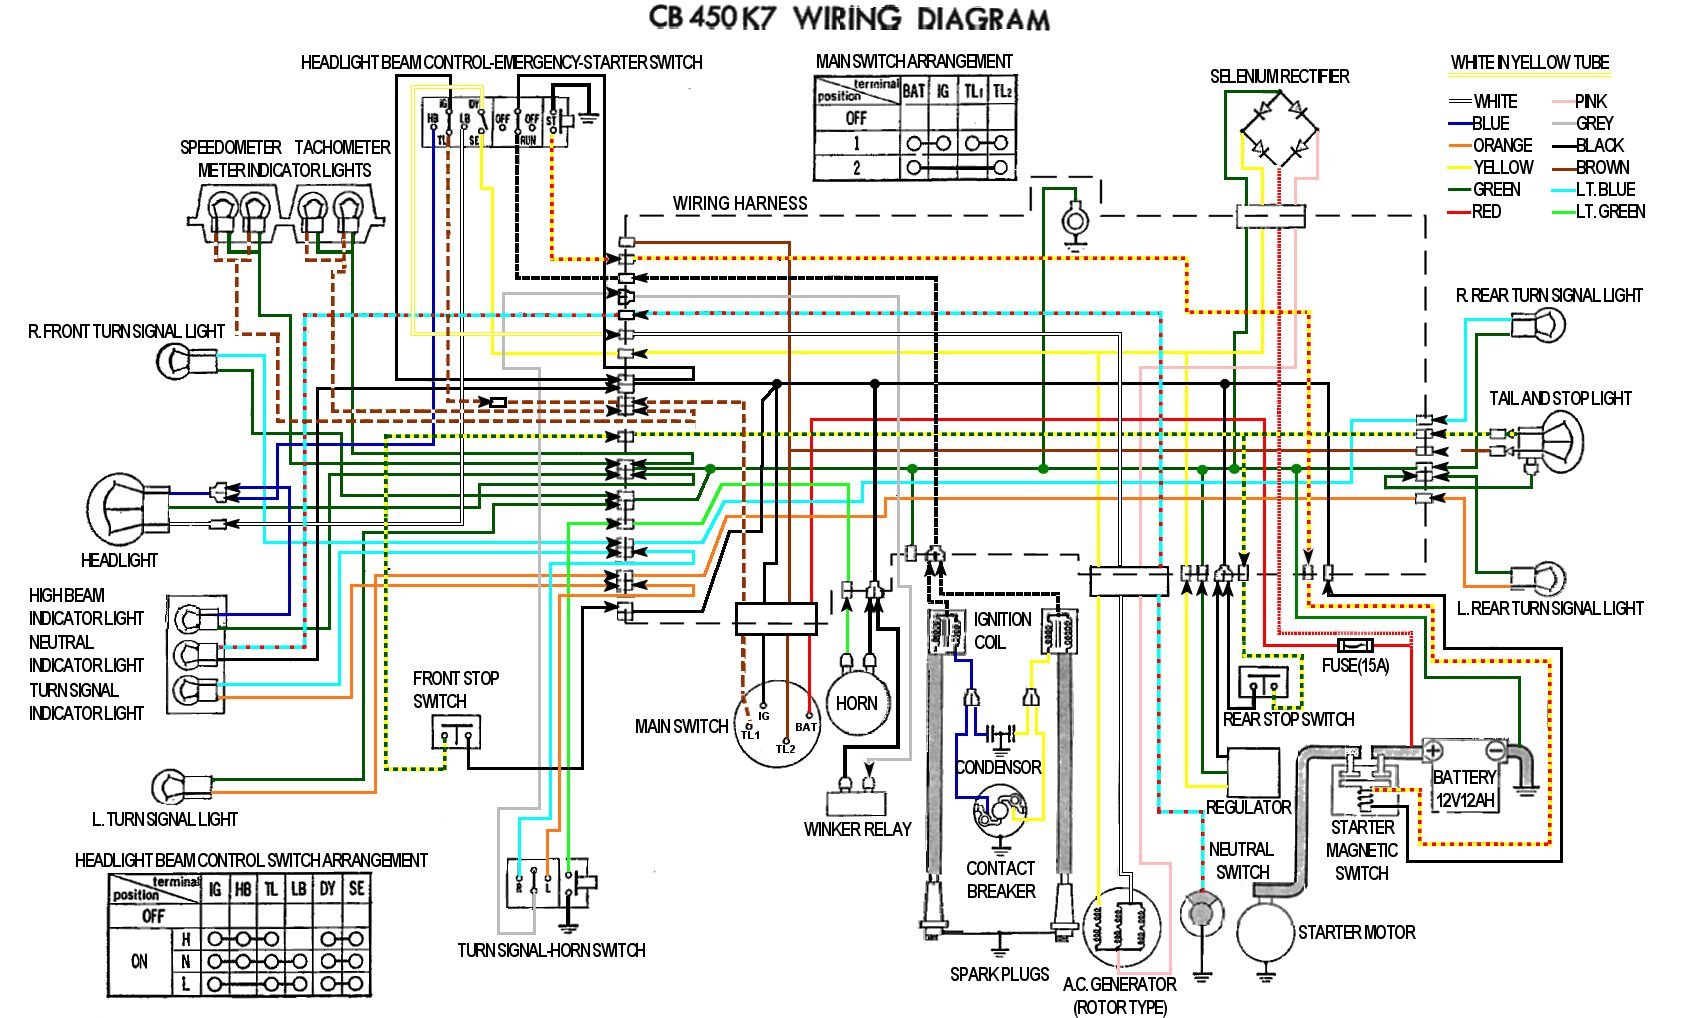 Wiring Diagram Manual Wdm : Cb color wiring diagram now corrected